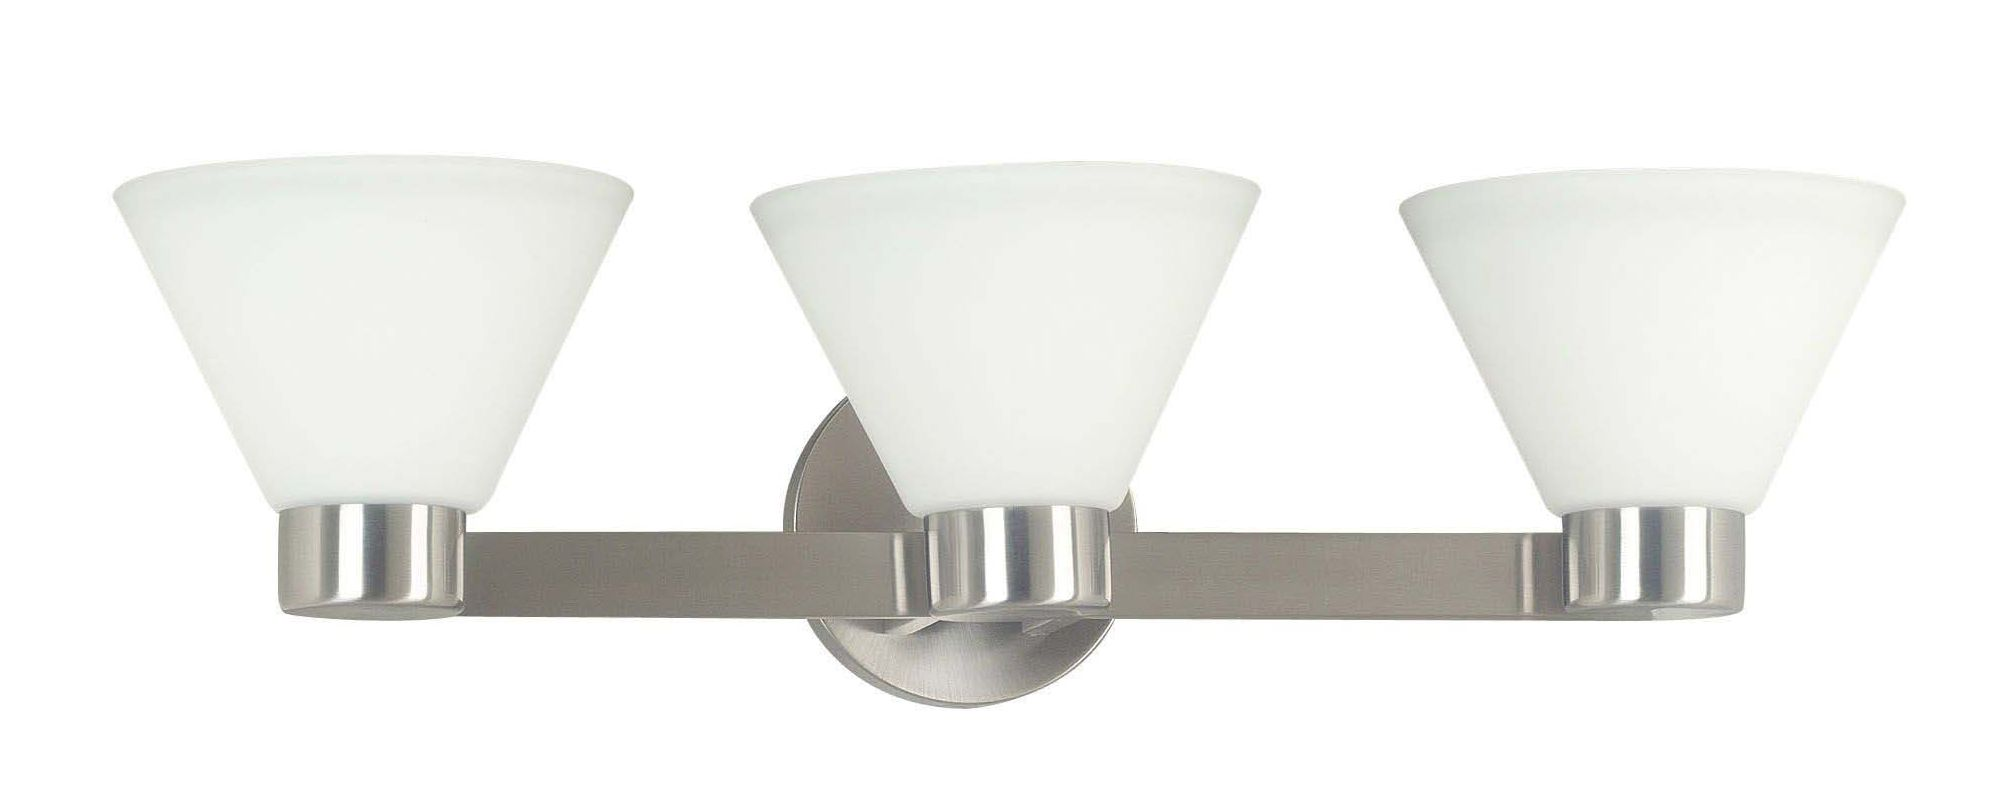 Kenroy Home 91793 Maxwell 3 Light Wall Sconce Brushed Steel Indoor Sale $99.00 ITEM: bci1328313 ID#:91793BS UPC: 53392043575 :